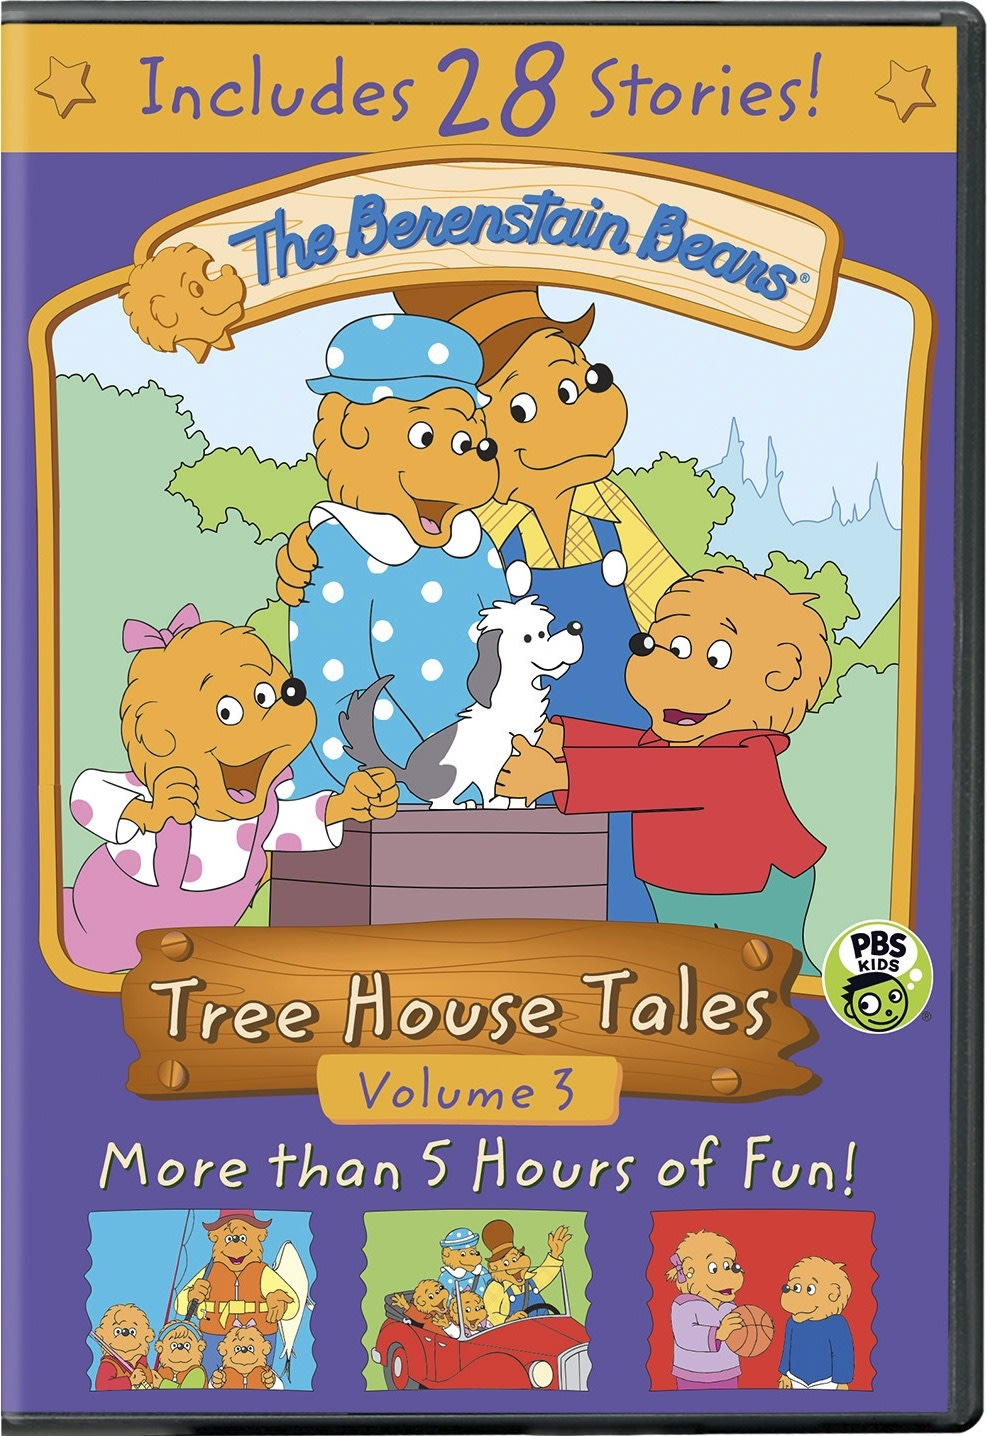 The Berenstain Bears: Tree House Tales - Volume 3 [DVD]